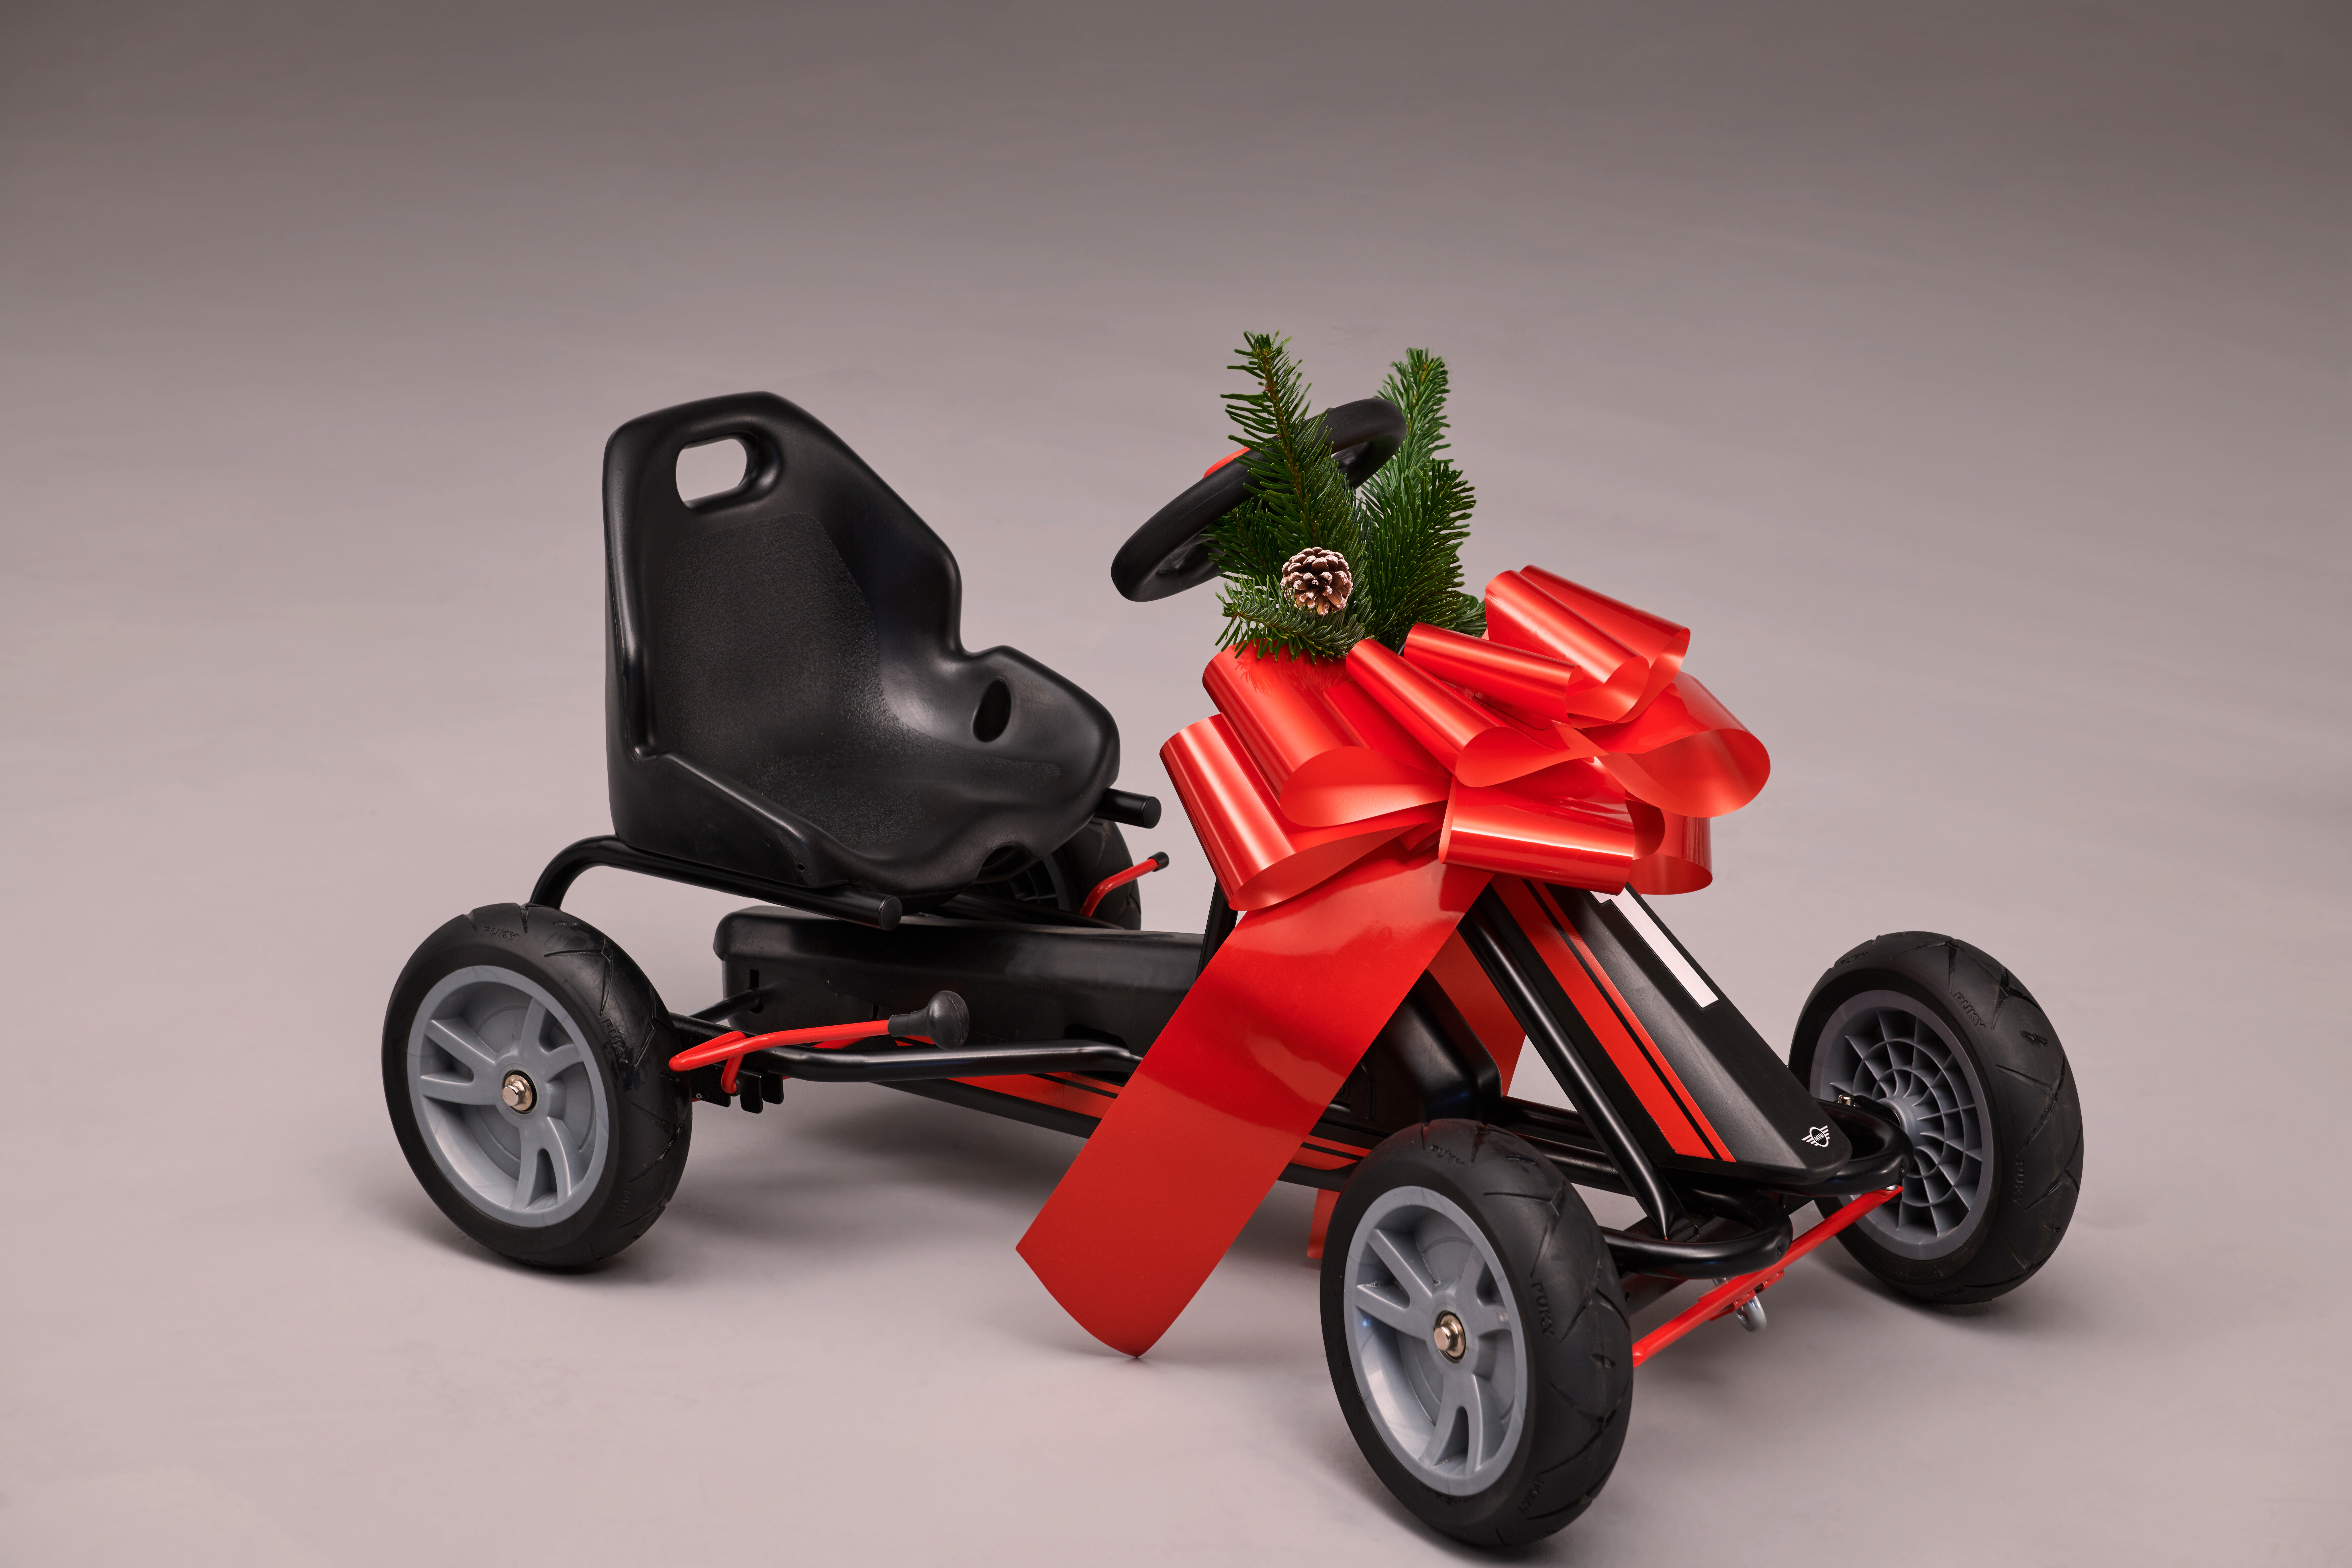 We say Minis handle like a go-kart, well, here's a go-kart Mini. Adjustable seat, handbrake and horn. For kids aged 3yrs or 95cm tall. Go to shop.mini.co.uk.